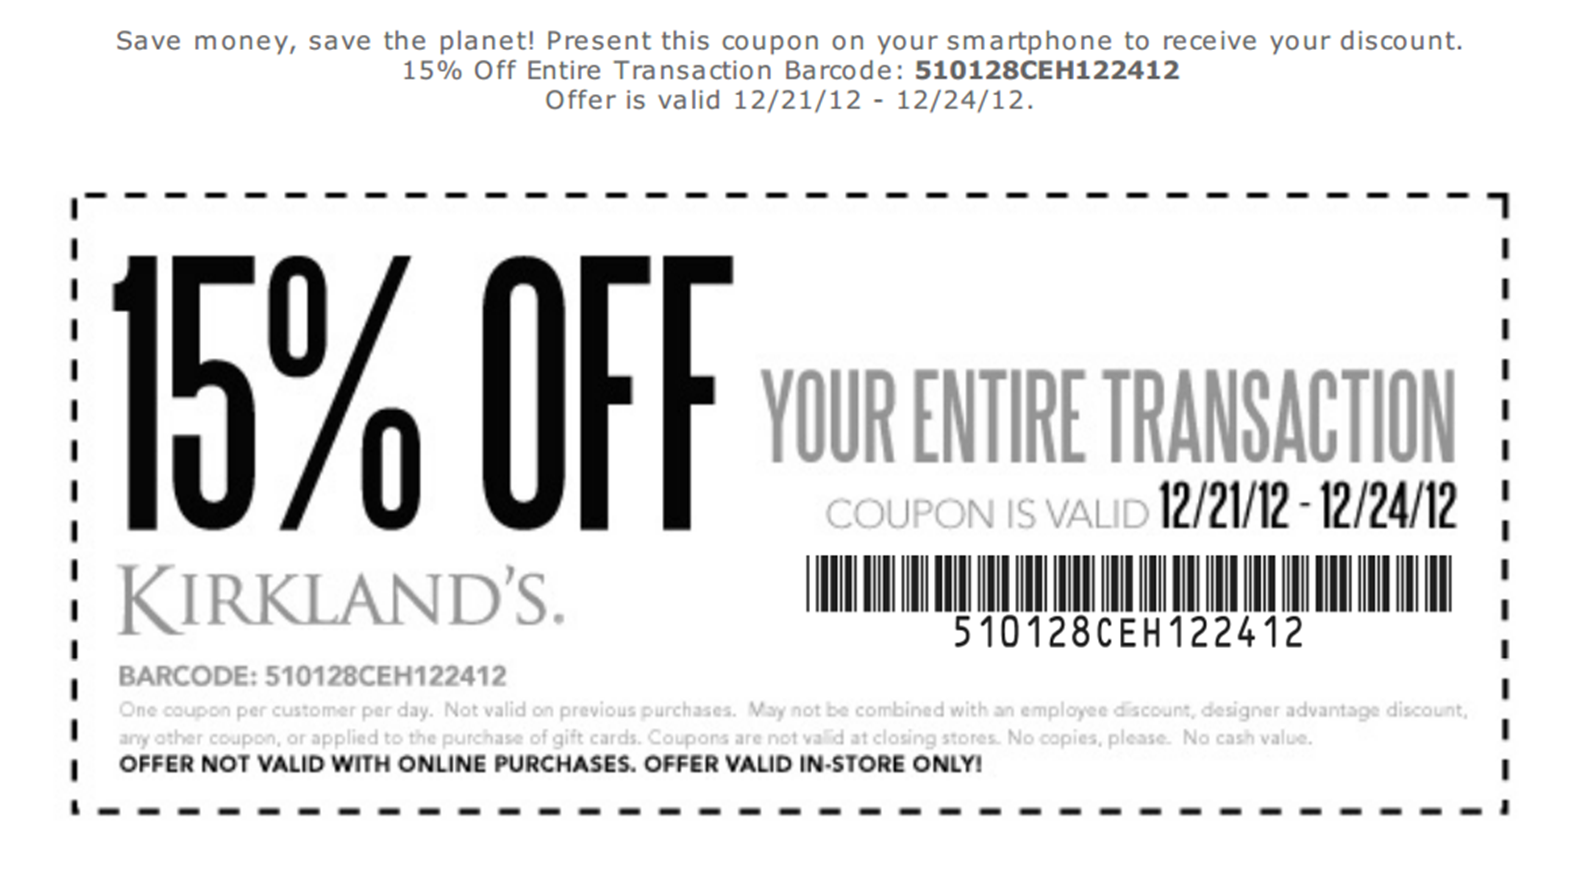 Kirklands Coupons Kirkland S Home Decor And Uniquely Distinctive Gifts From Wall Decor Home Decorations And Furniture Printable Coupons Coupons Kirklands